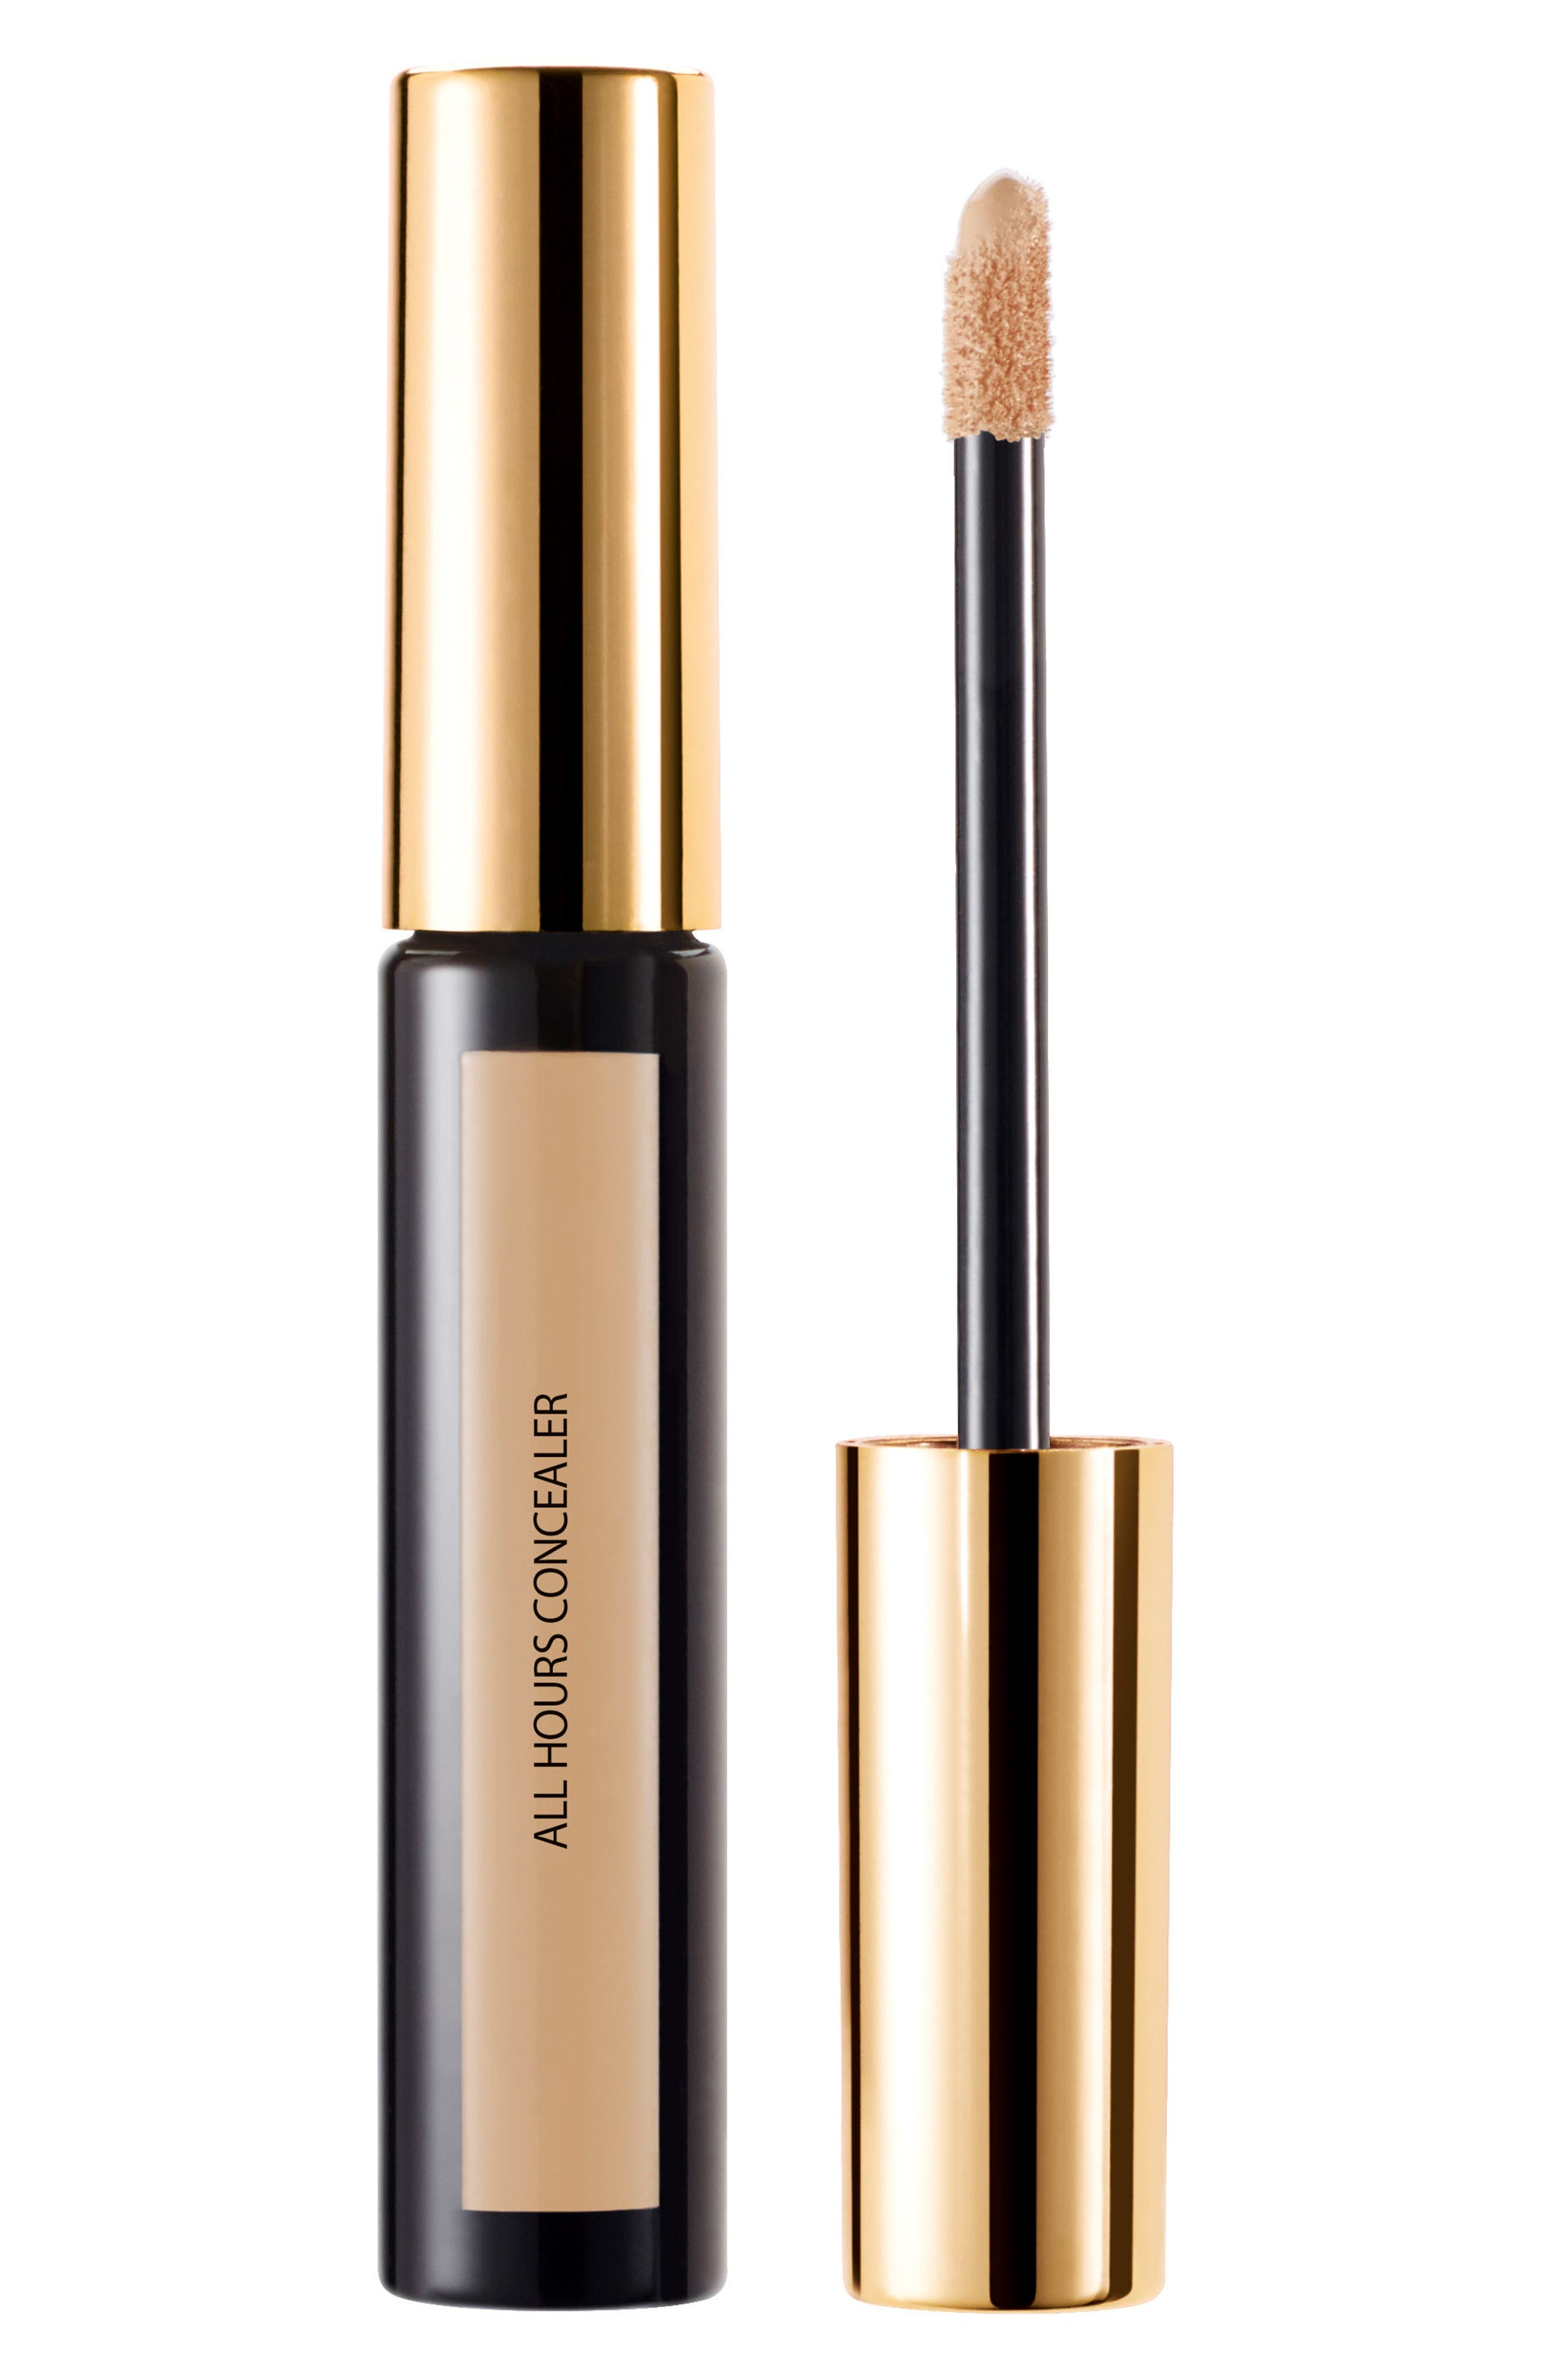 Yves Saint Laurent All Hours Concealer - 2 Ivory